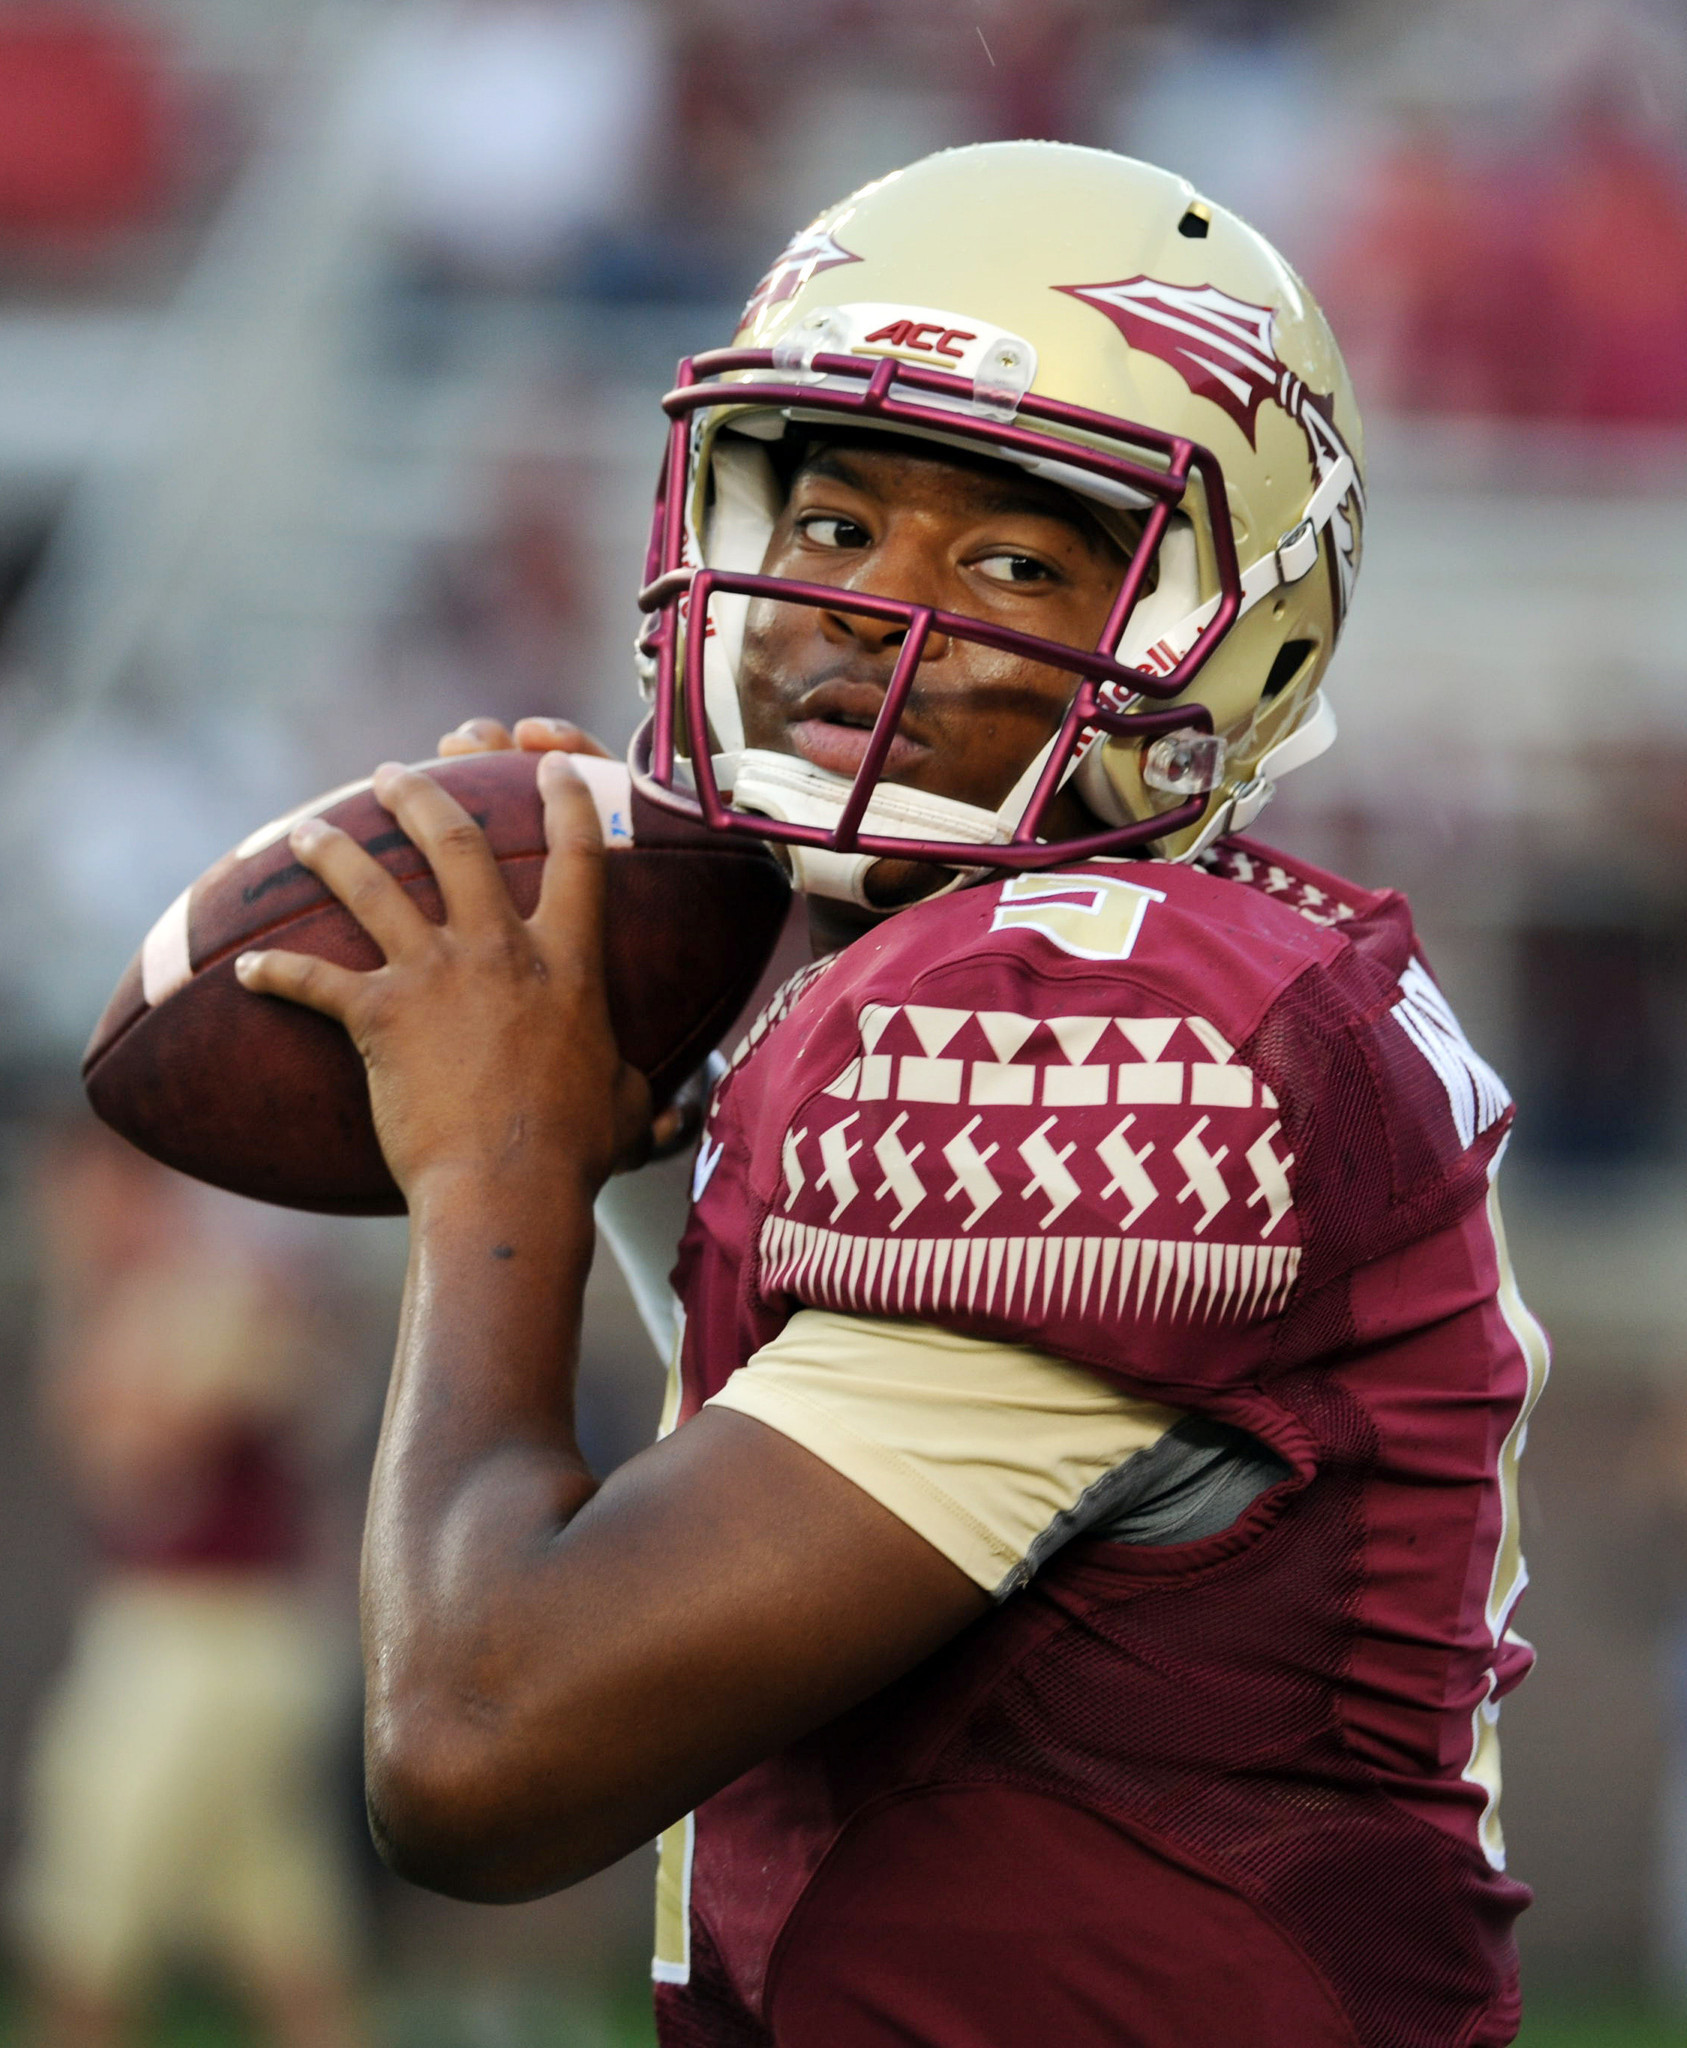 FSU President John Thrasher defends school's response to Jameis Winston rape allegation